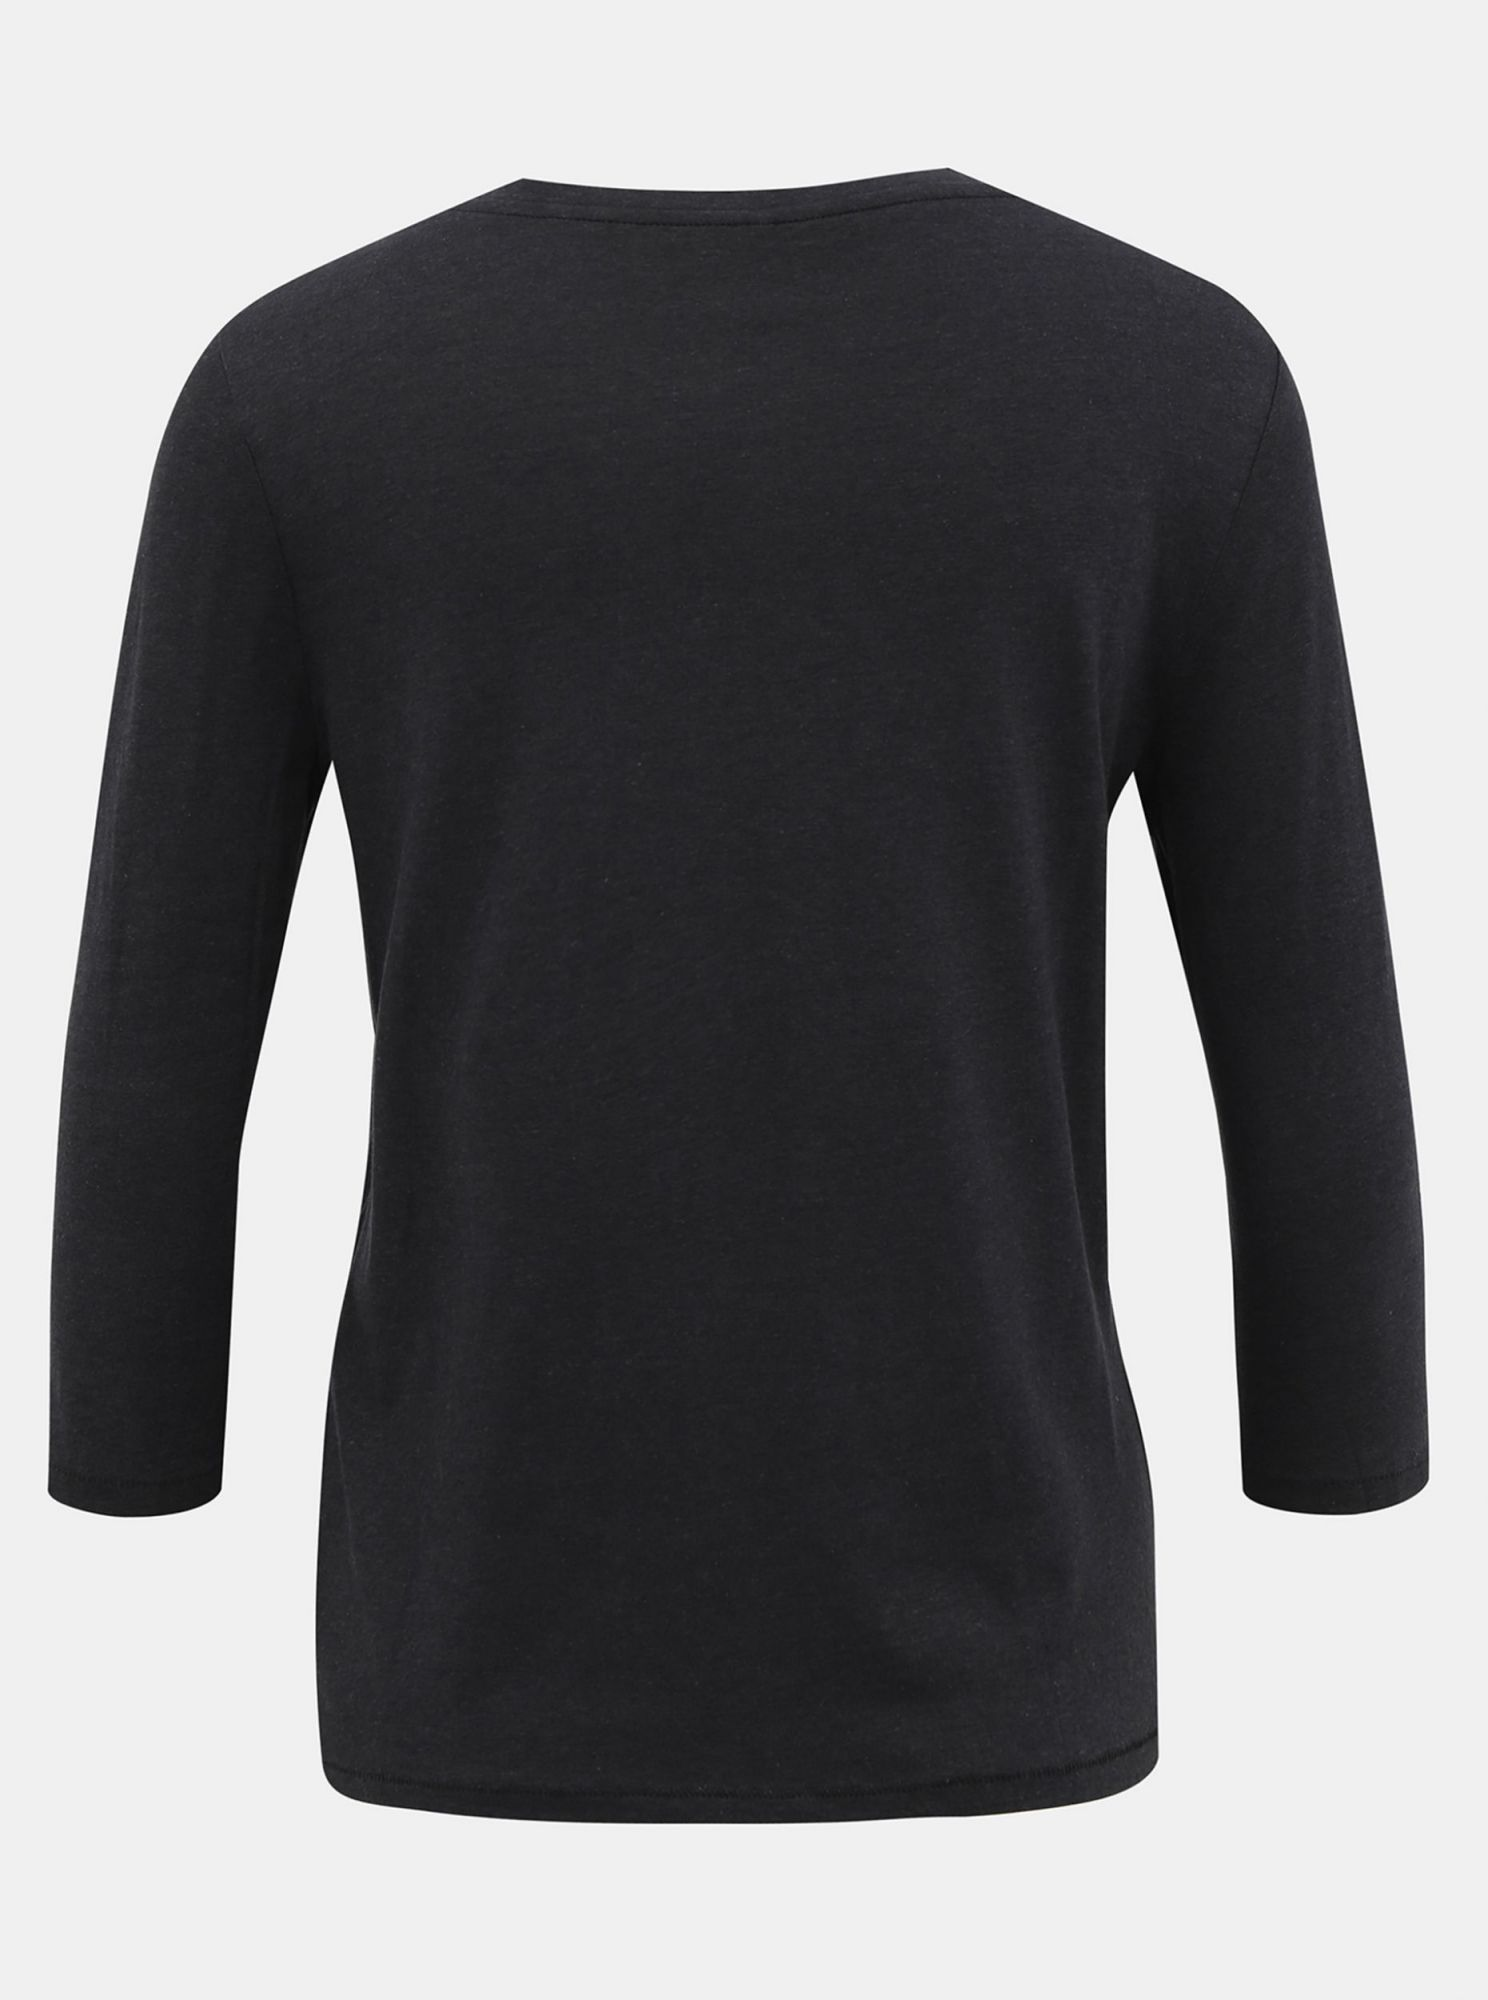 Black T-shirt with 3/4 sleeves ONLY Rosely